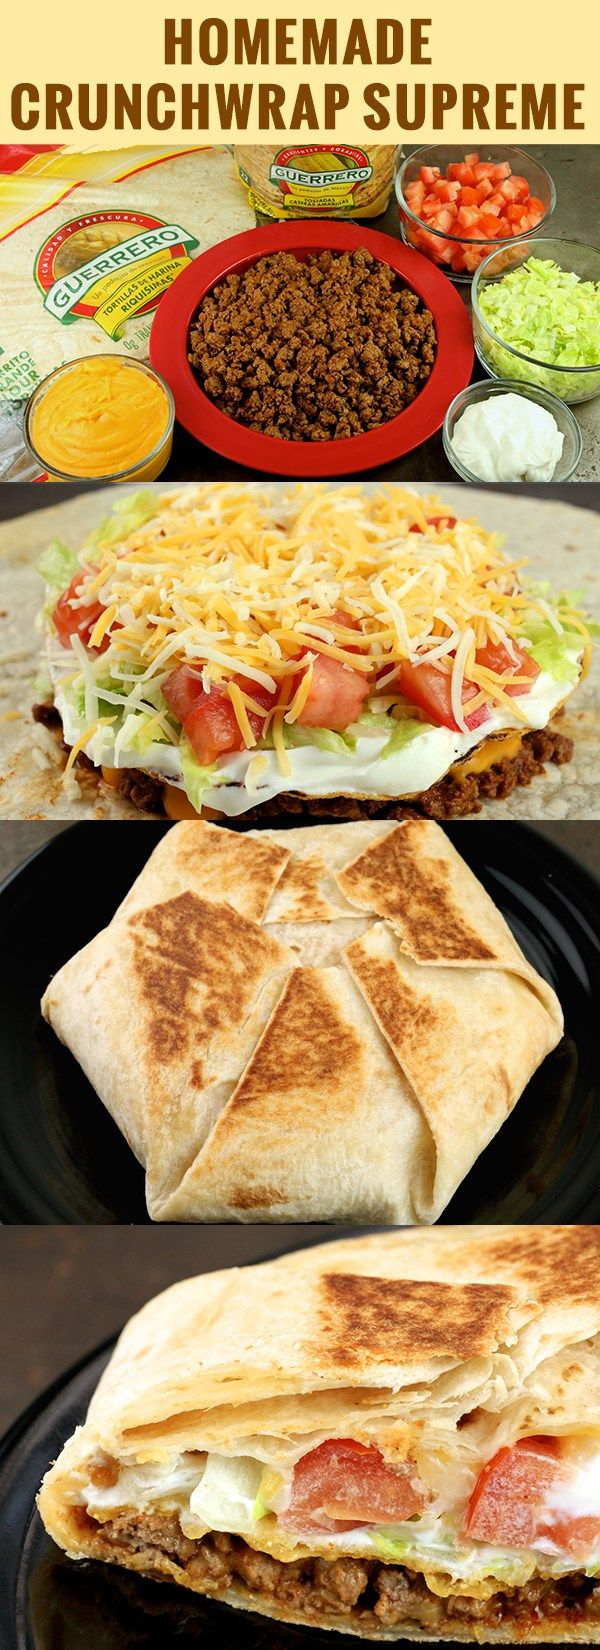 Homemade Crunchwrap Supreme Recipe easy to substitute ingredients to make this recipe gluten and or dairy free